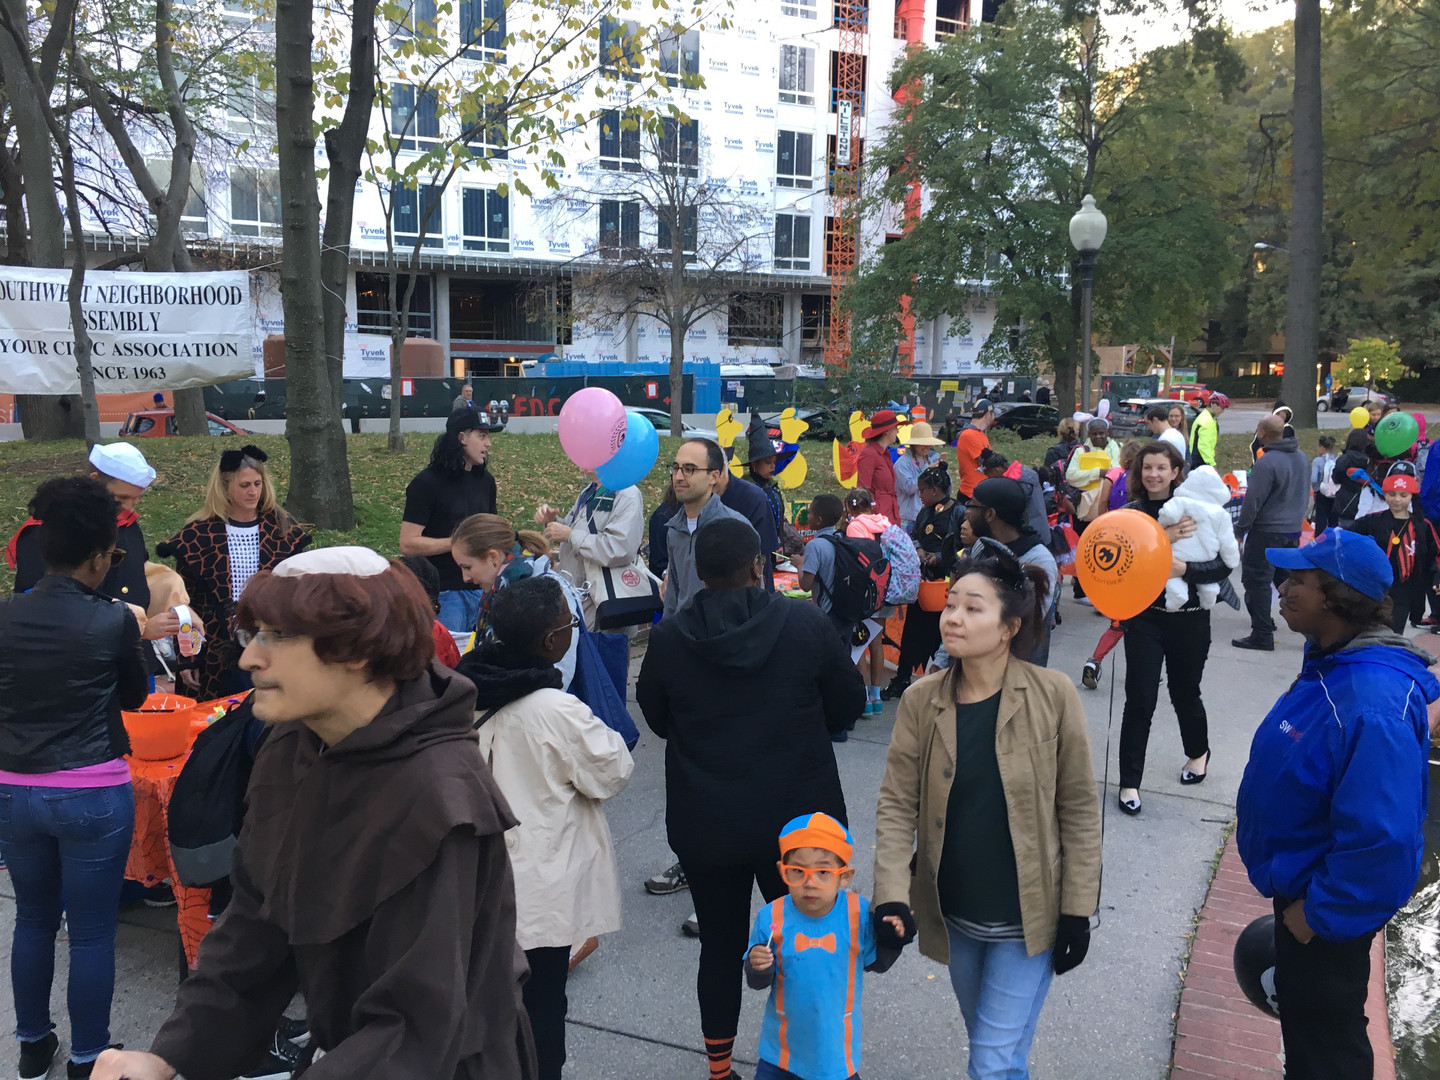 Manager of Community Events and Special Projects   created a community Halloween event at the SW Duck Pond   SWBID